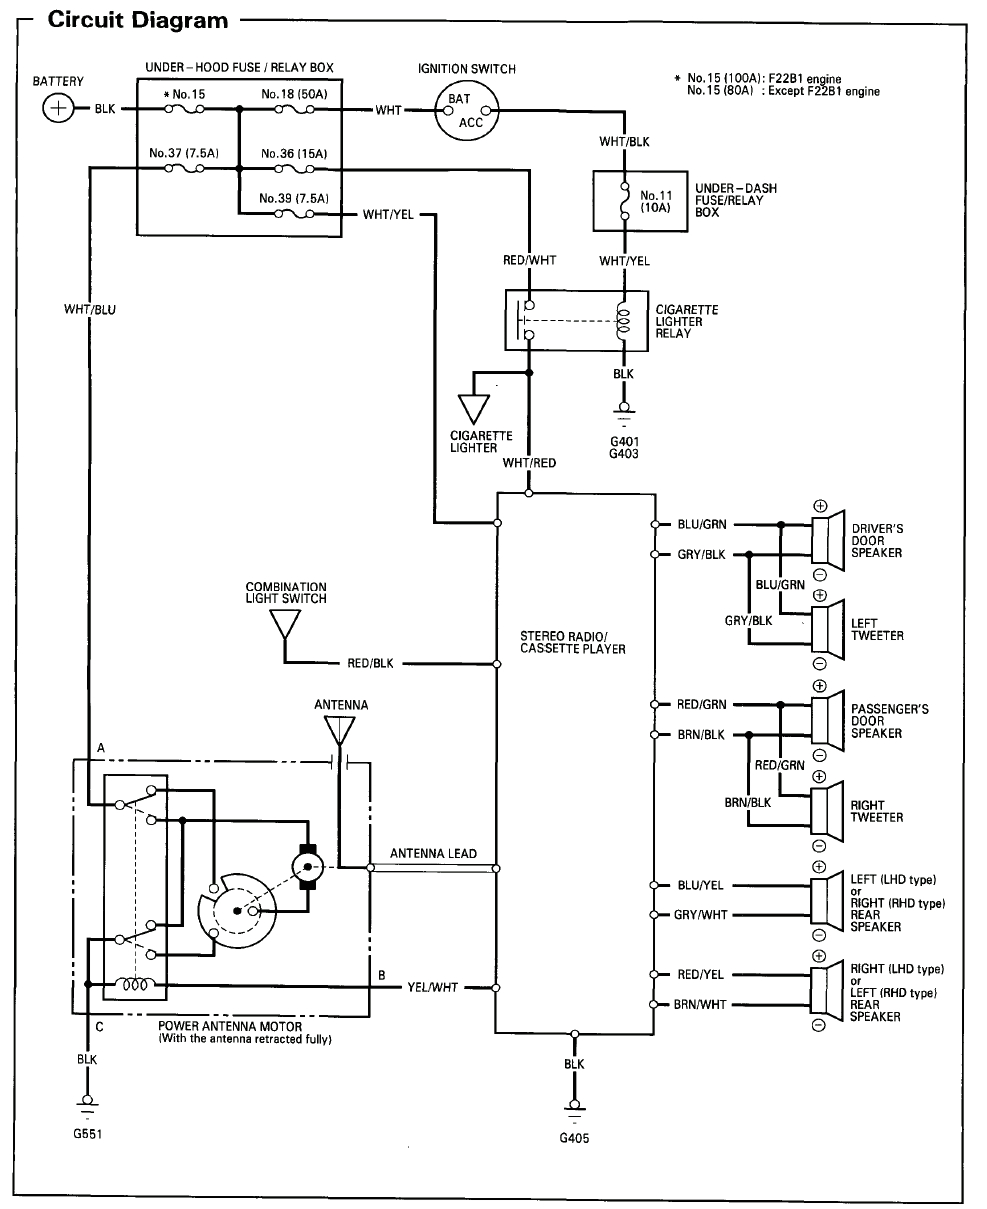 94 accord radio wiring diagram cant find the right one honda tech 1994 accord antenna wiring diagram 1994 accord wire diagram